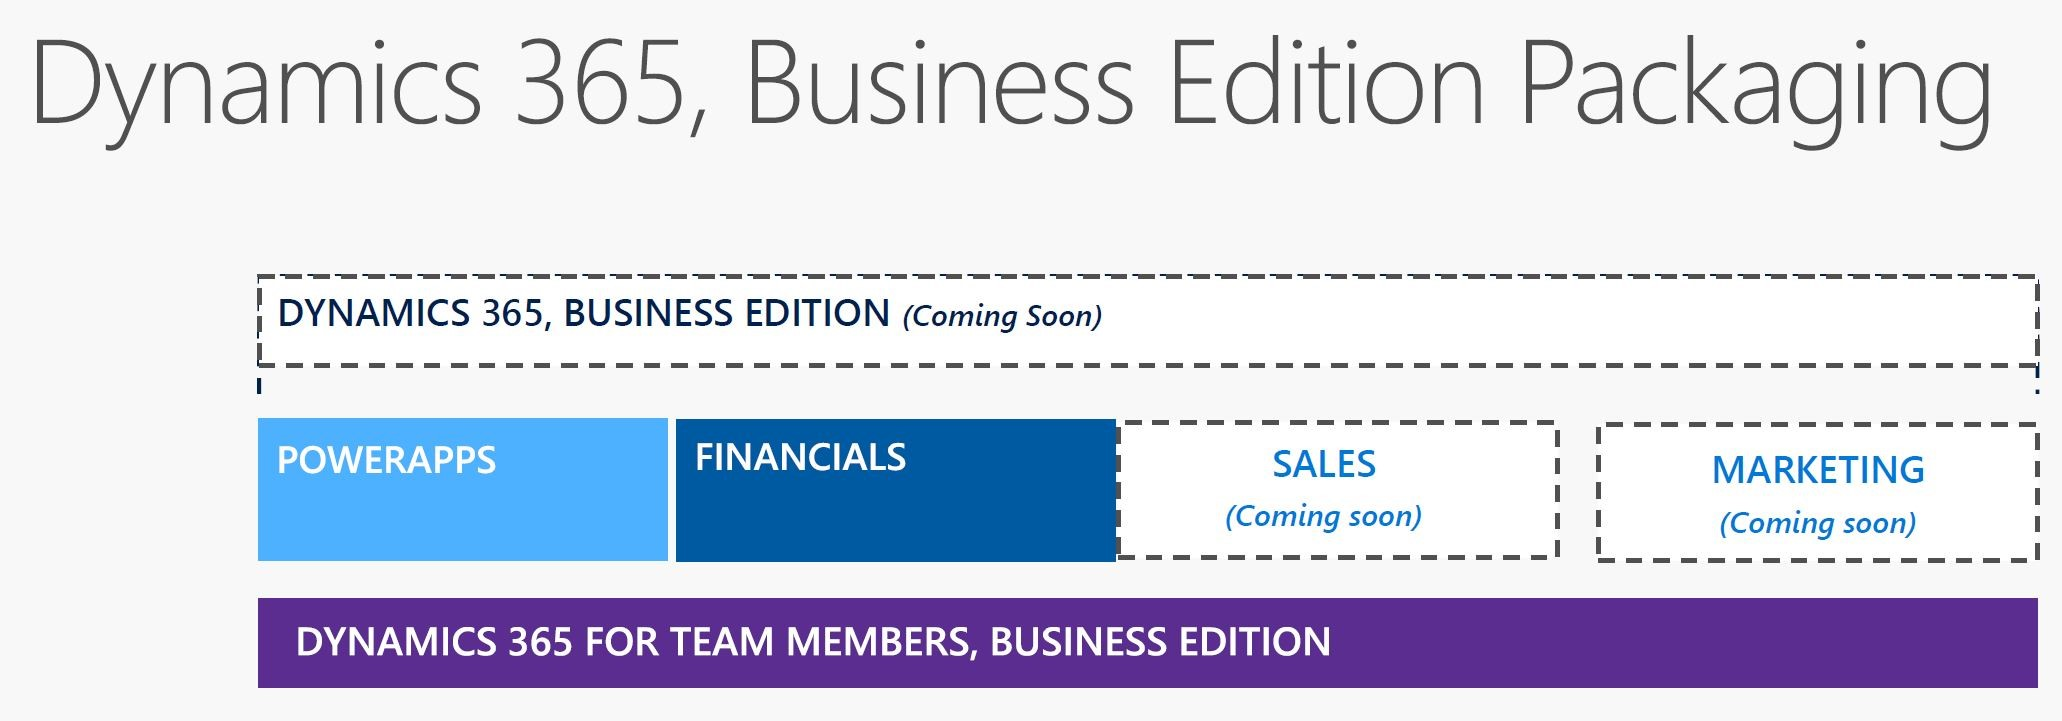 dynamics-365-business-edition-pricing